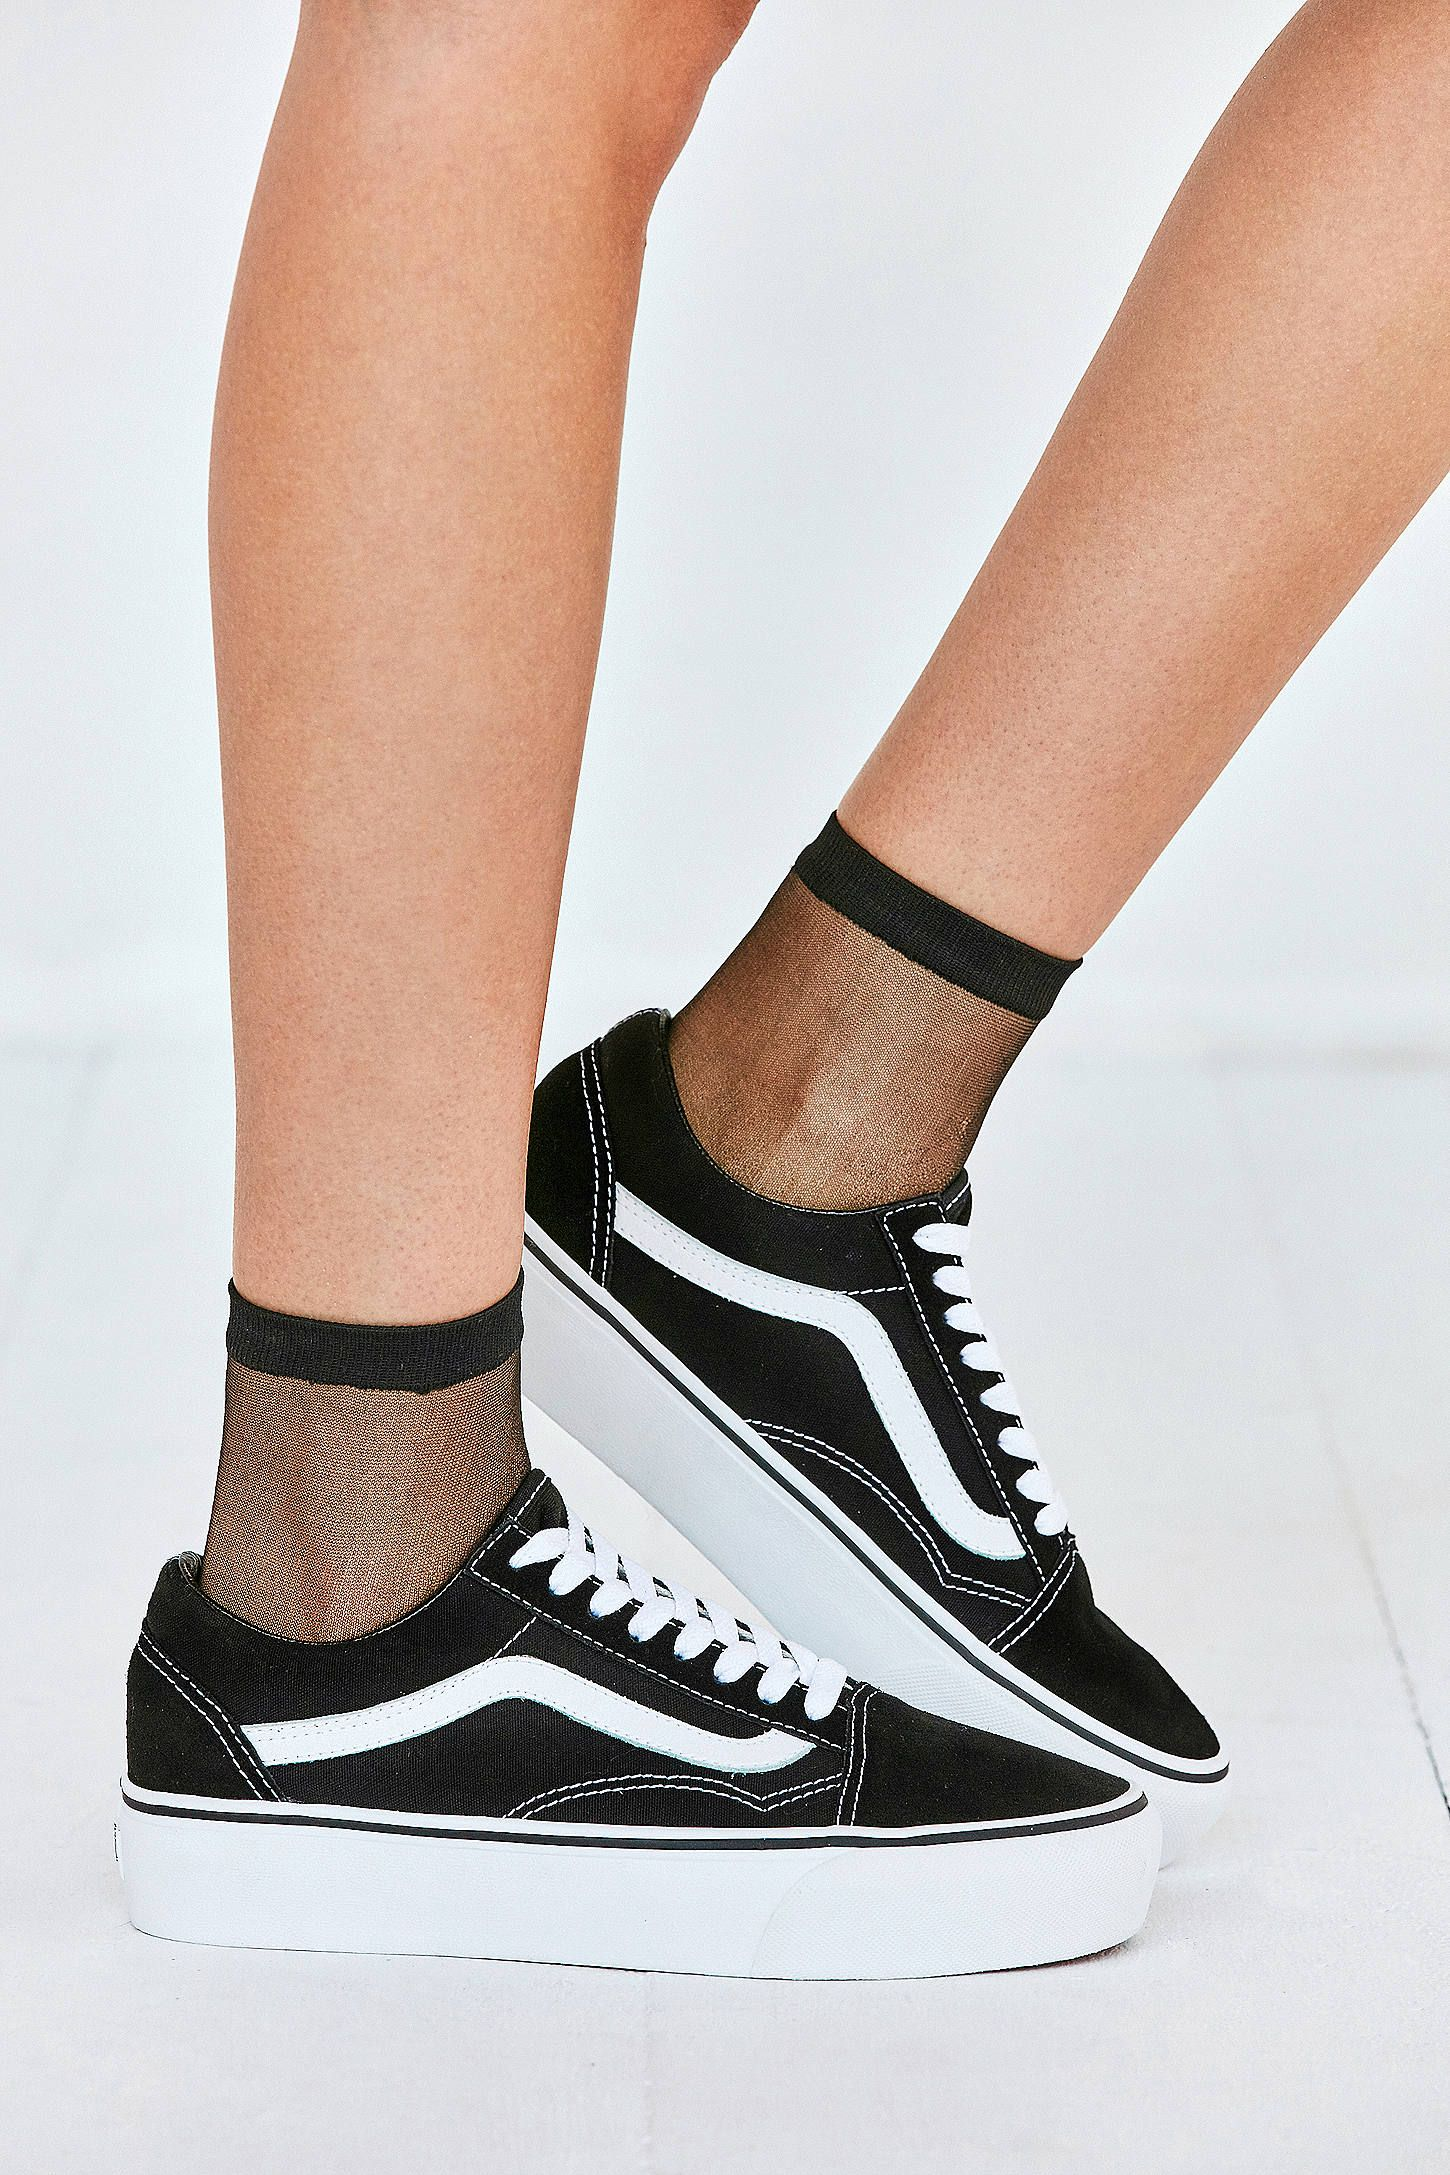 Shop Vans Old Skool Platform Trainers at Urban Outfitters today. We carry  all the latest